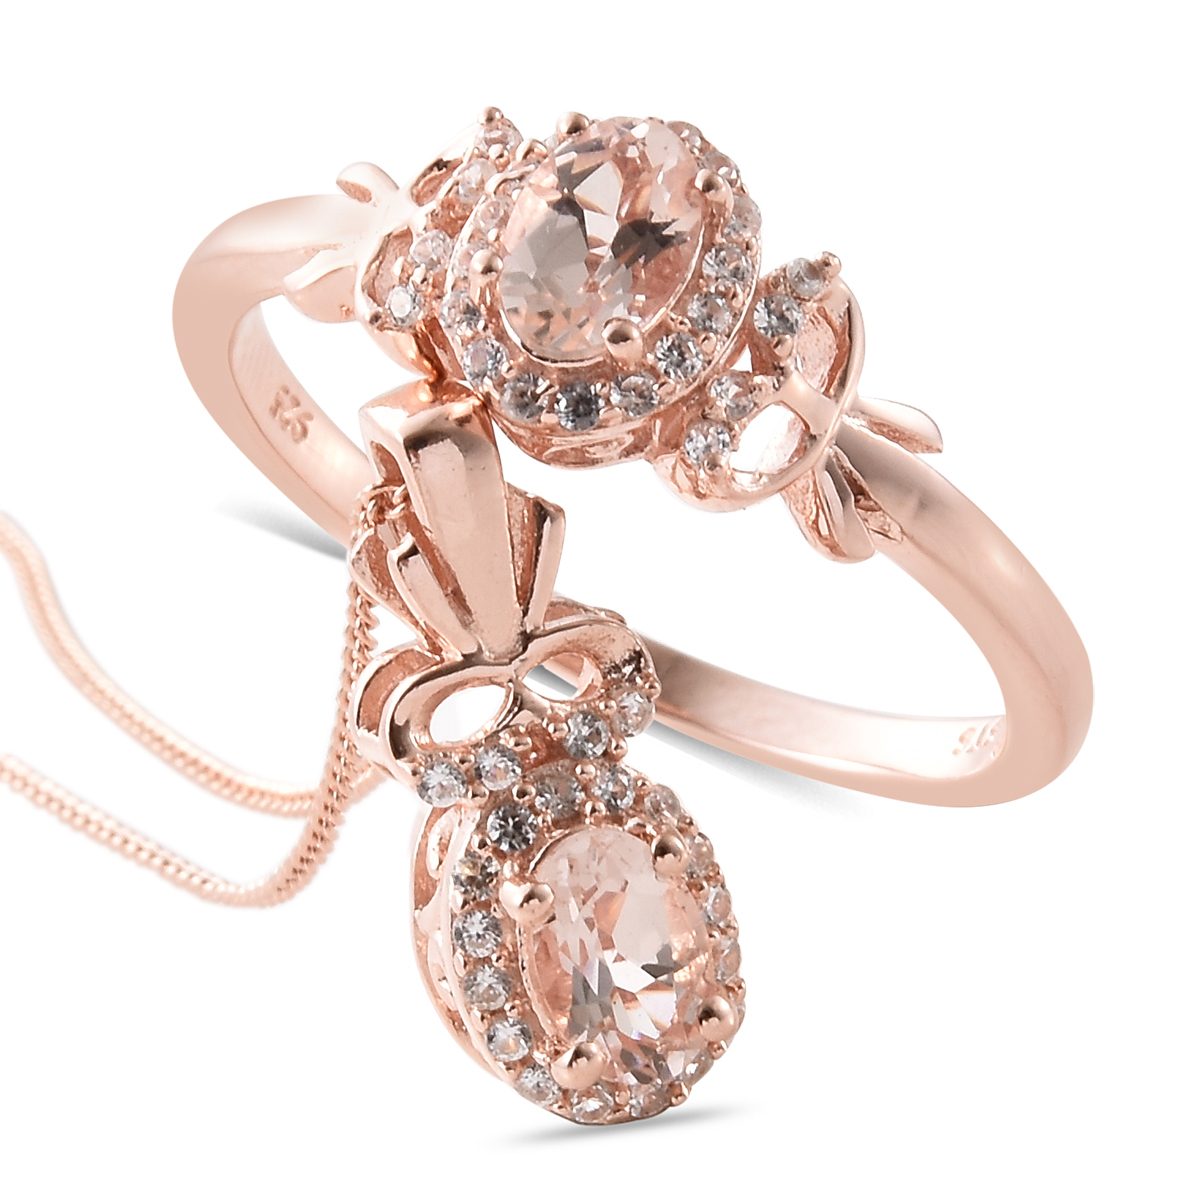 Marropino Morganite, Cambodian Zircon Vermeil Rg Over Sterling Silver Bow  Ring (Size 9) And Pendant With Chain (20 In) Tgw 1.20 Cts. Throughout Latest Classic Bow Rings (Gallery 25 of 25)